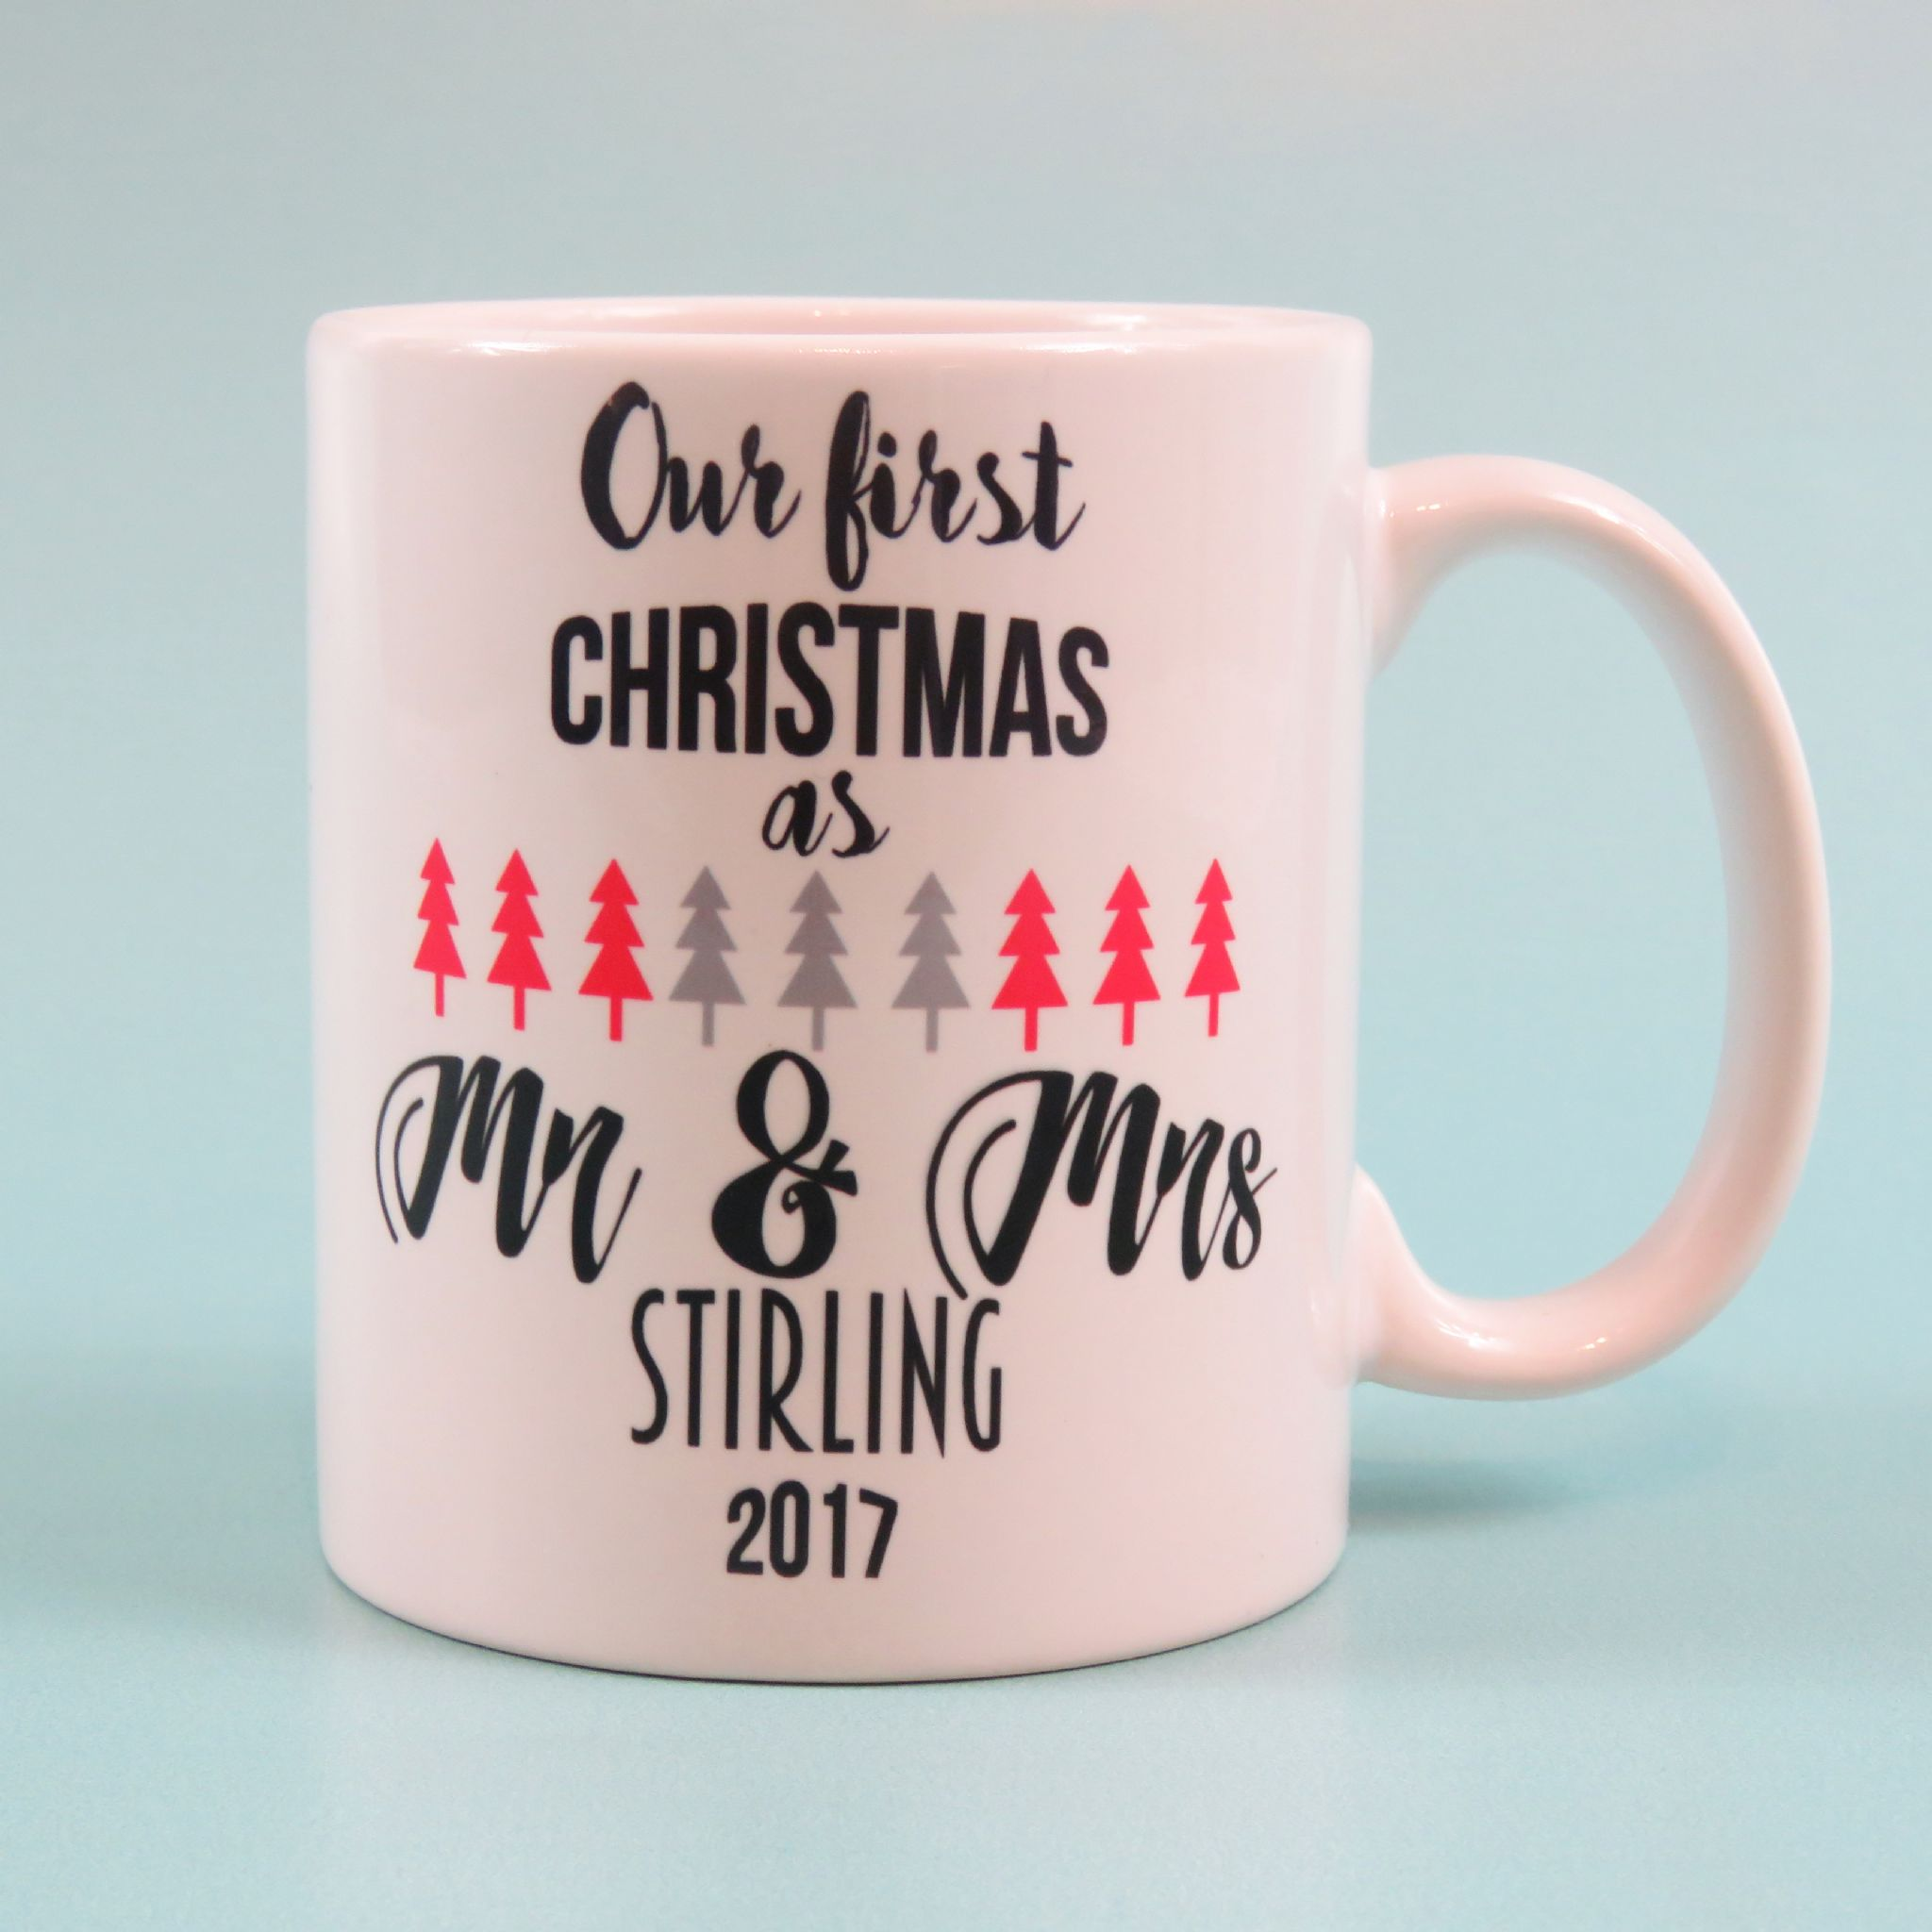 gifts for a couples first christmas